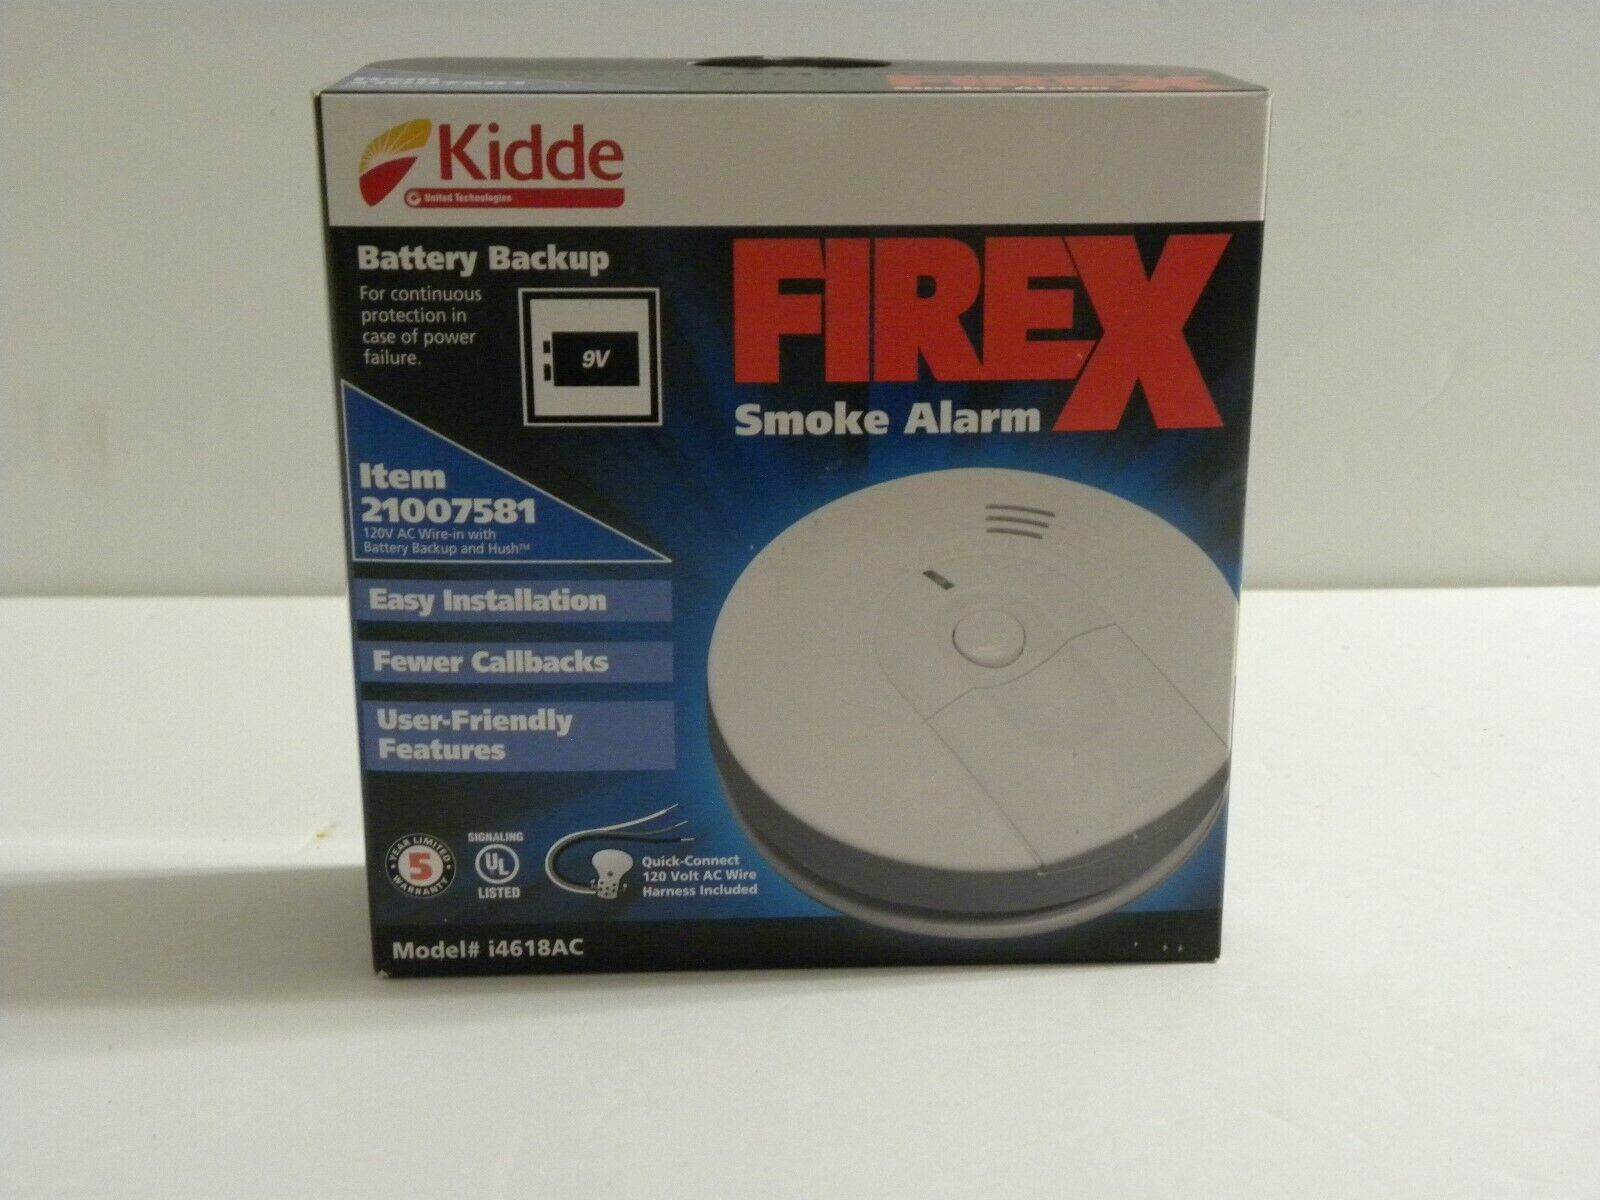 FireX i4618AC 21007581 120V AC Wire-In With Battery Backup /& Hush Smoke Alarm